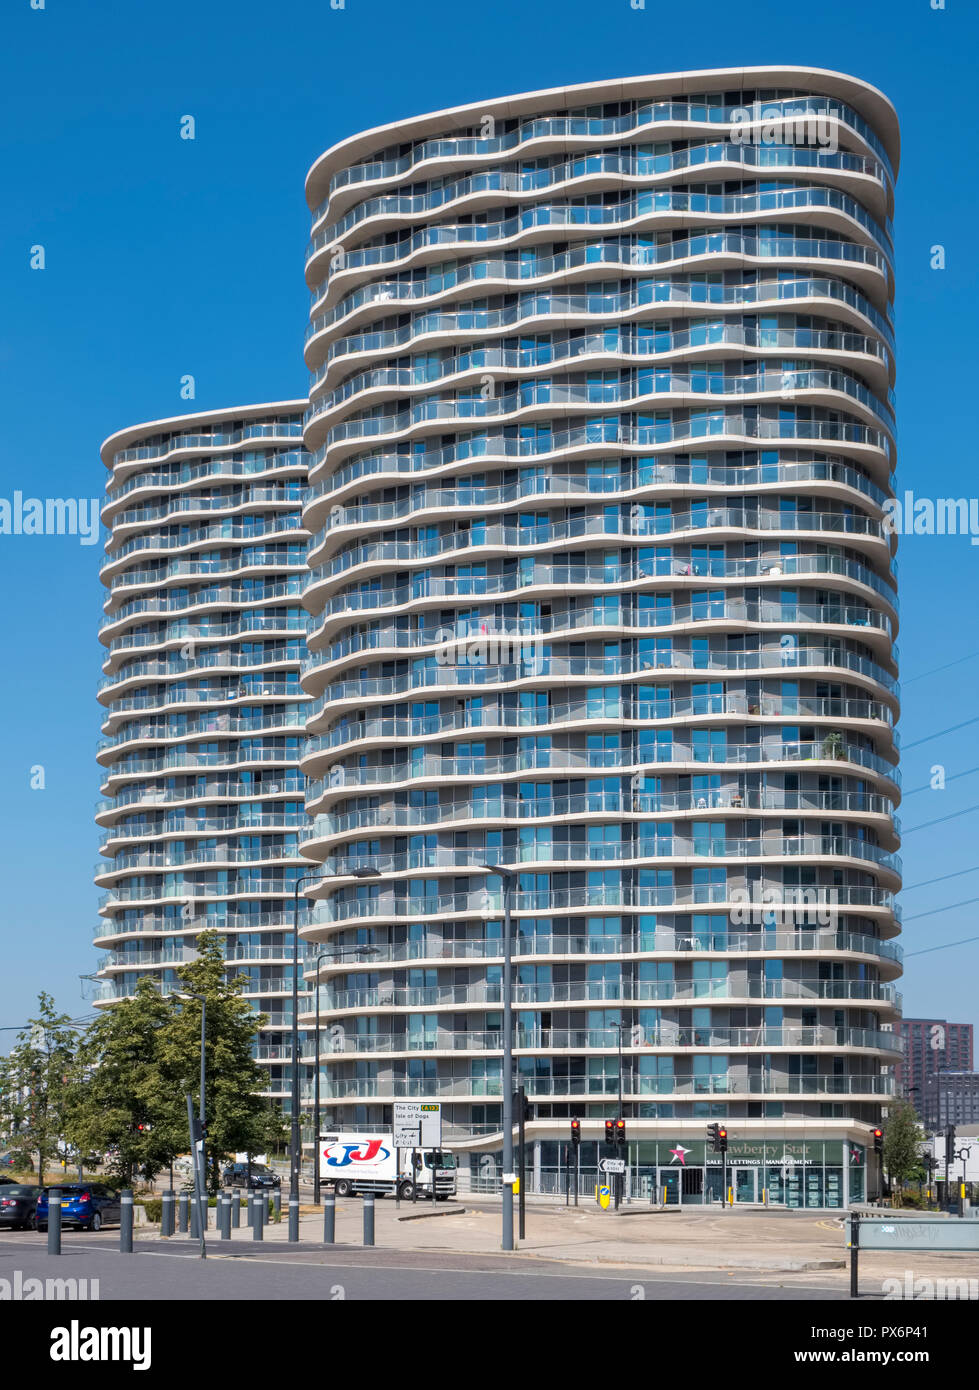 High-rise apartment buildings at Royal Victoria Dock, London, England, UK, modern architecture - Stock Image